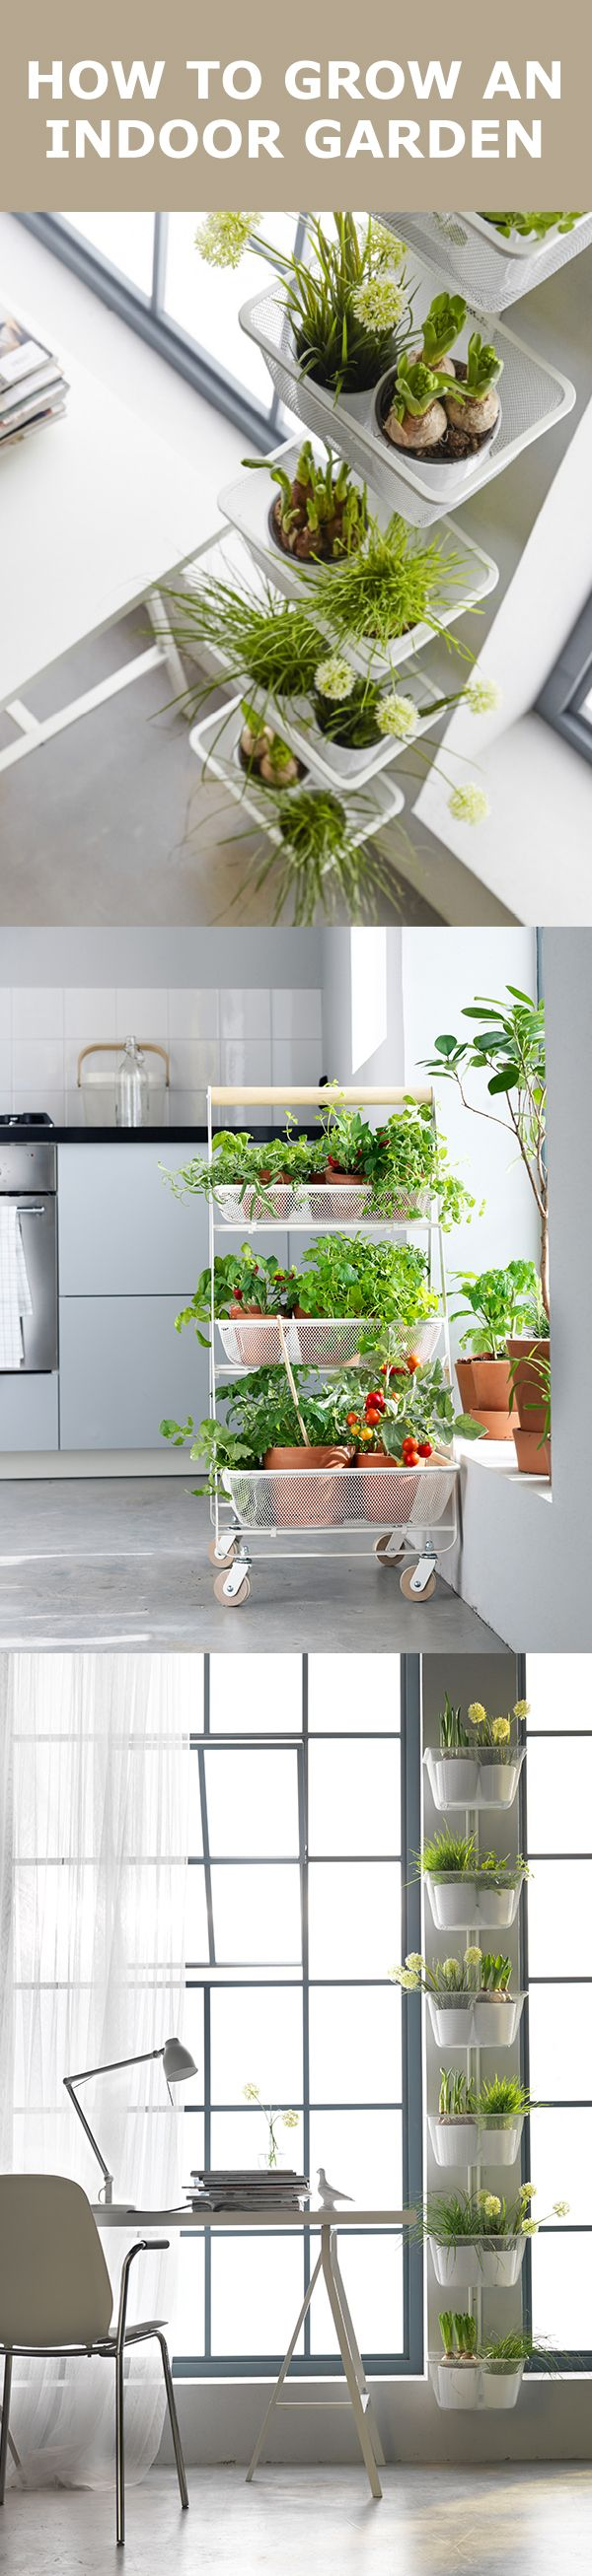 Want to bring the outdoors, indoors? Adding touches of greenery and flowers into your home can boost well-being and make your home feel fresh and cozy. Walls feeling bare? Create a wall garden using hanging plants. The RISATORP utility cart can hold a ton of plants, plus it's mobile so you can bring it inside or out. Potted plants and herbs can also add life to kitchen window sills.